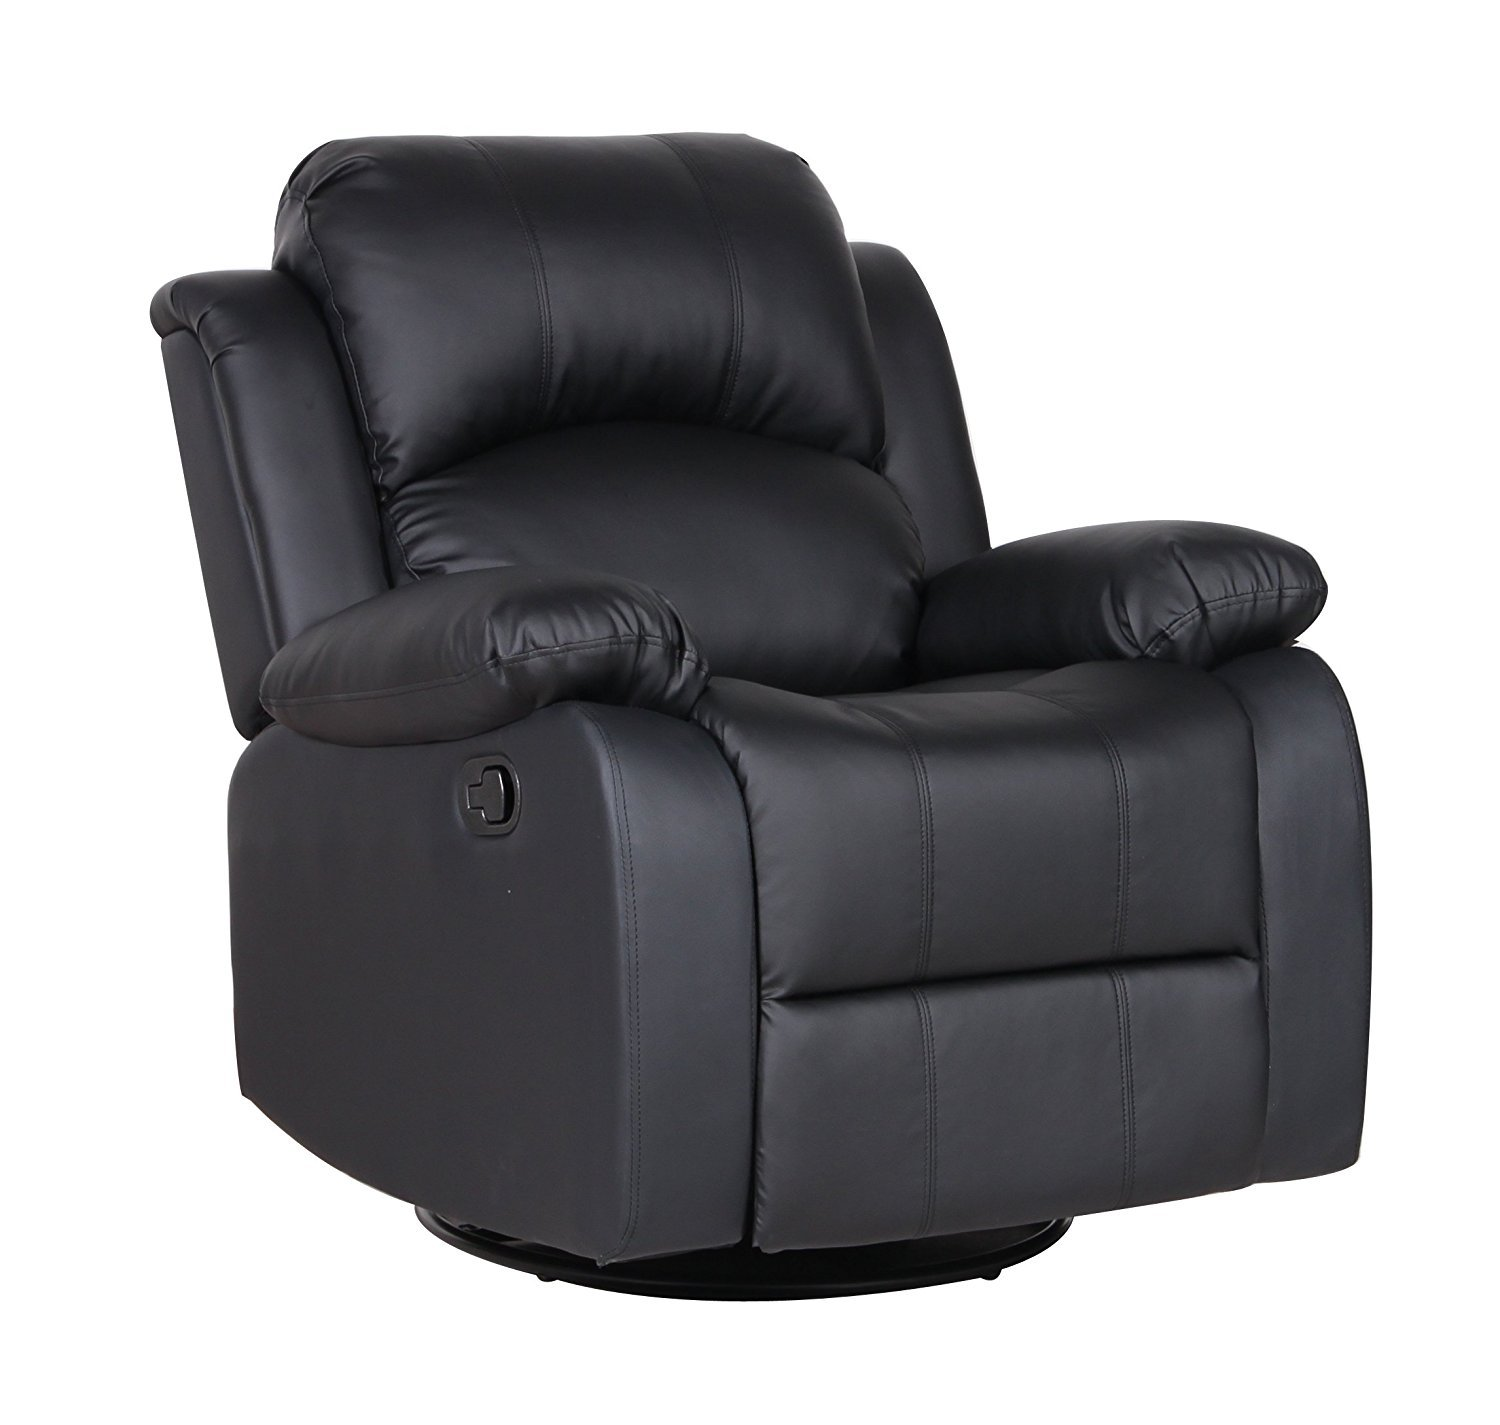 Swivel Recliner Chairs For Living Room  Home Furniture Design